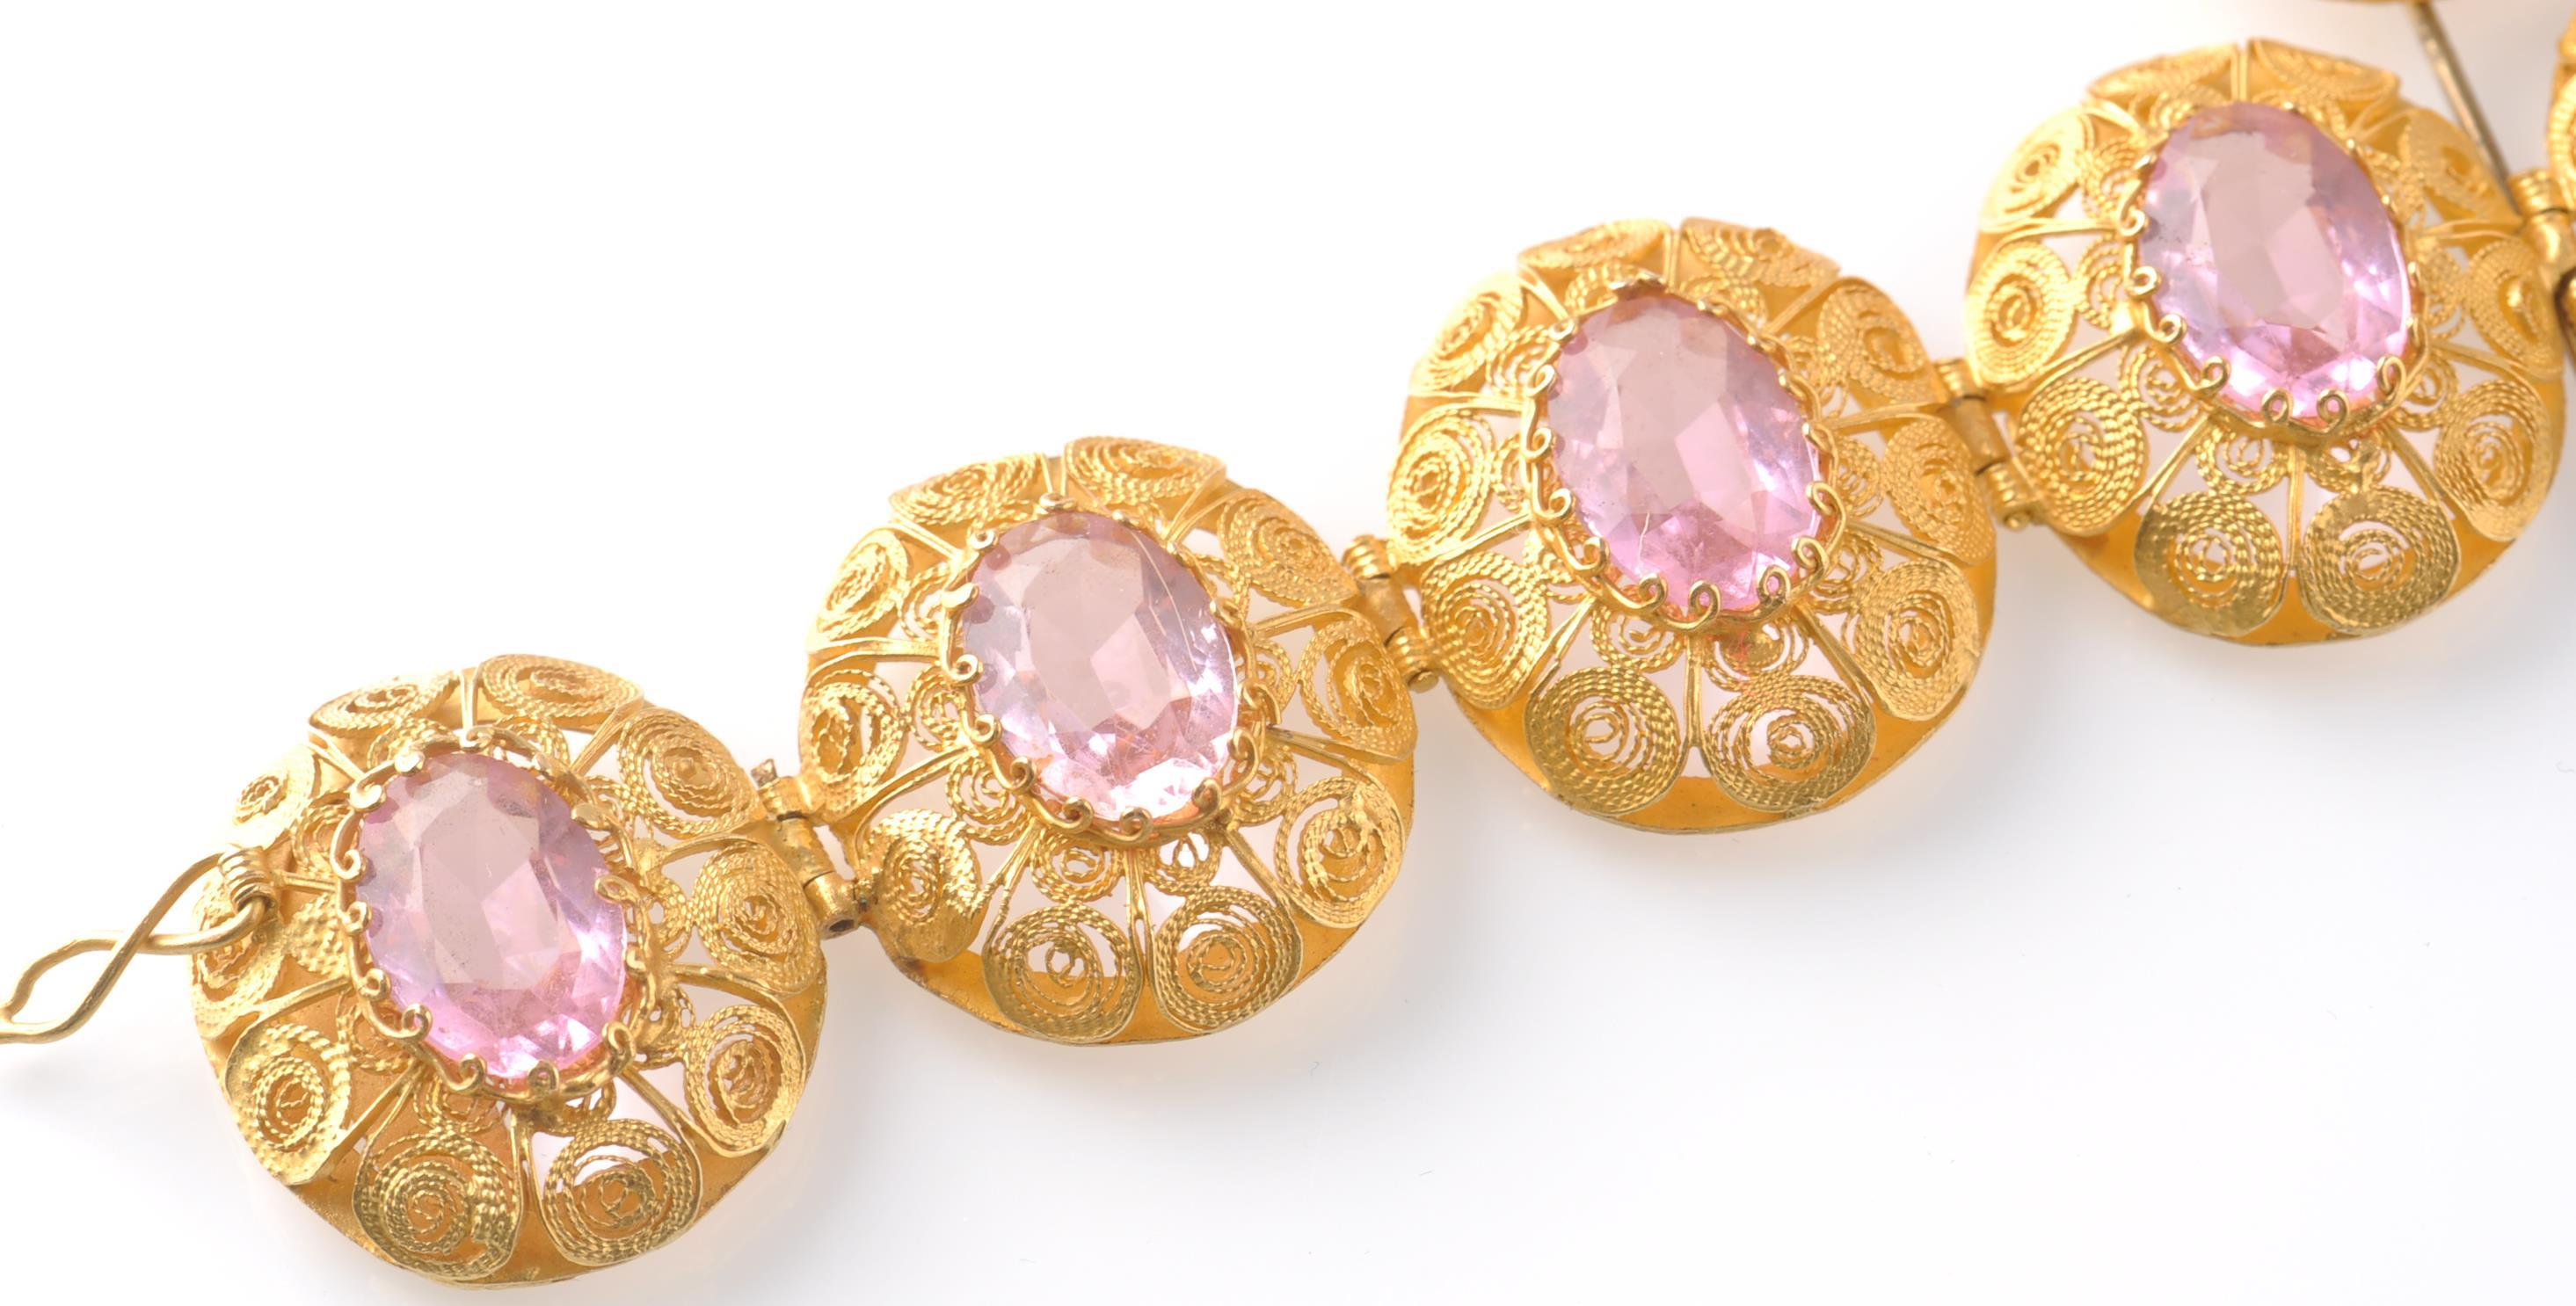 A GOLD FILIGREE AND PINK STONE BRACELET WITH PIN - Image 2 of 9